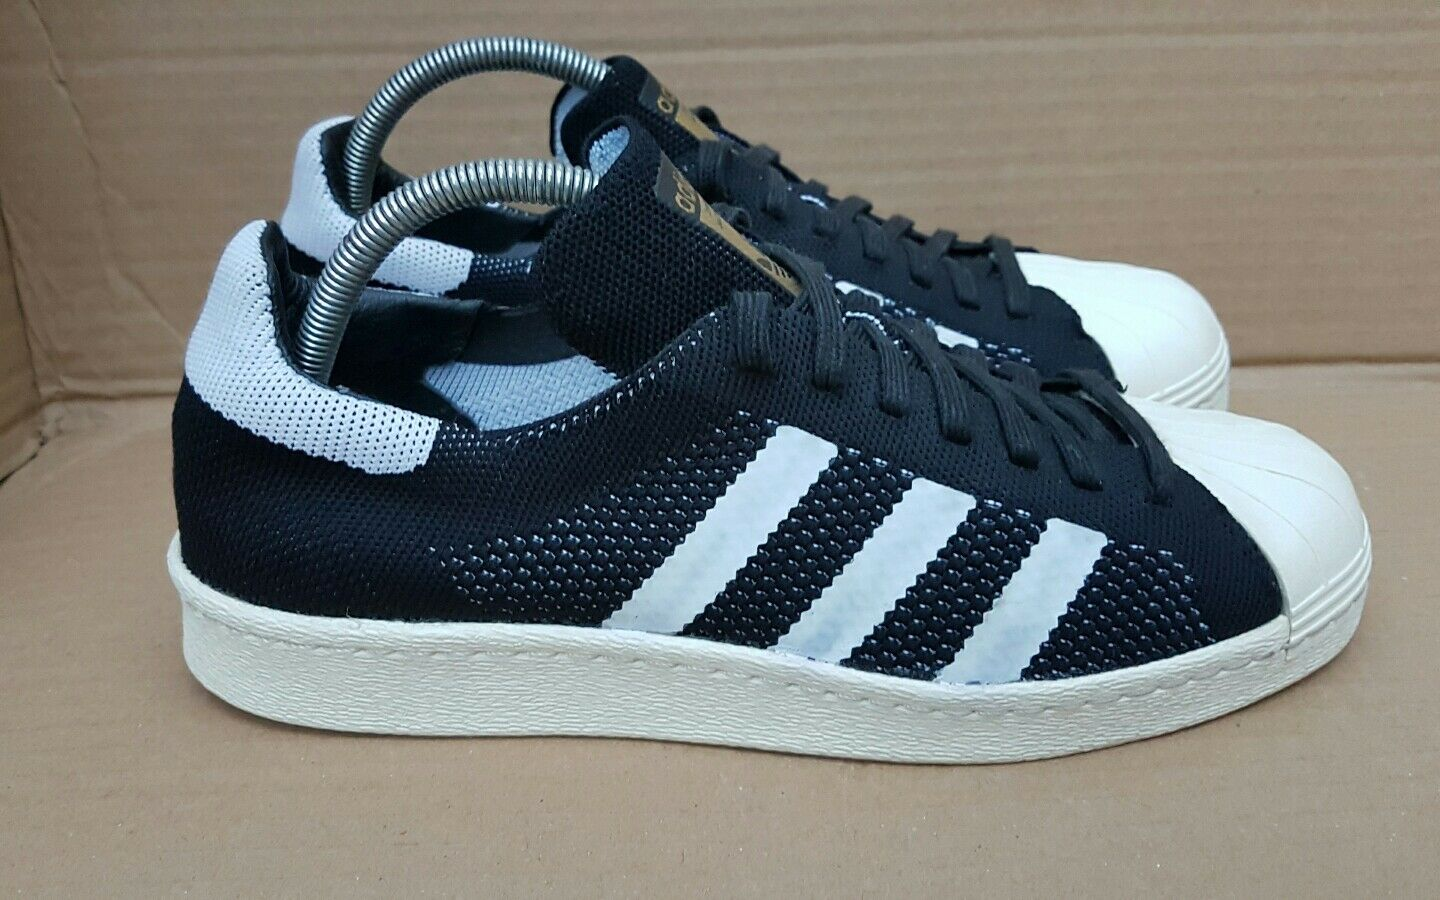 ADIDAS SUPERSTAR EDITION 80's PRIME KNIT BLACK AND WEISS LIMITED EDITION SUPERSTAR SIZE 5 UK 996a83